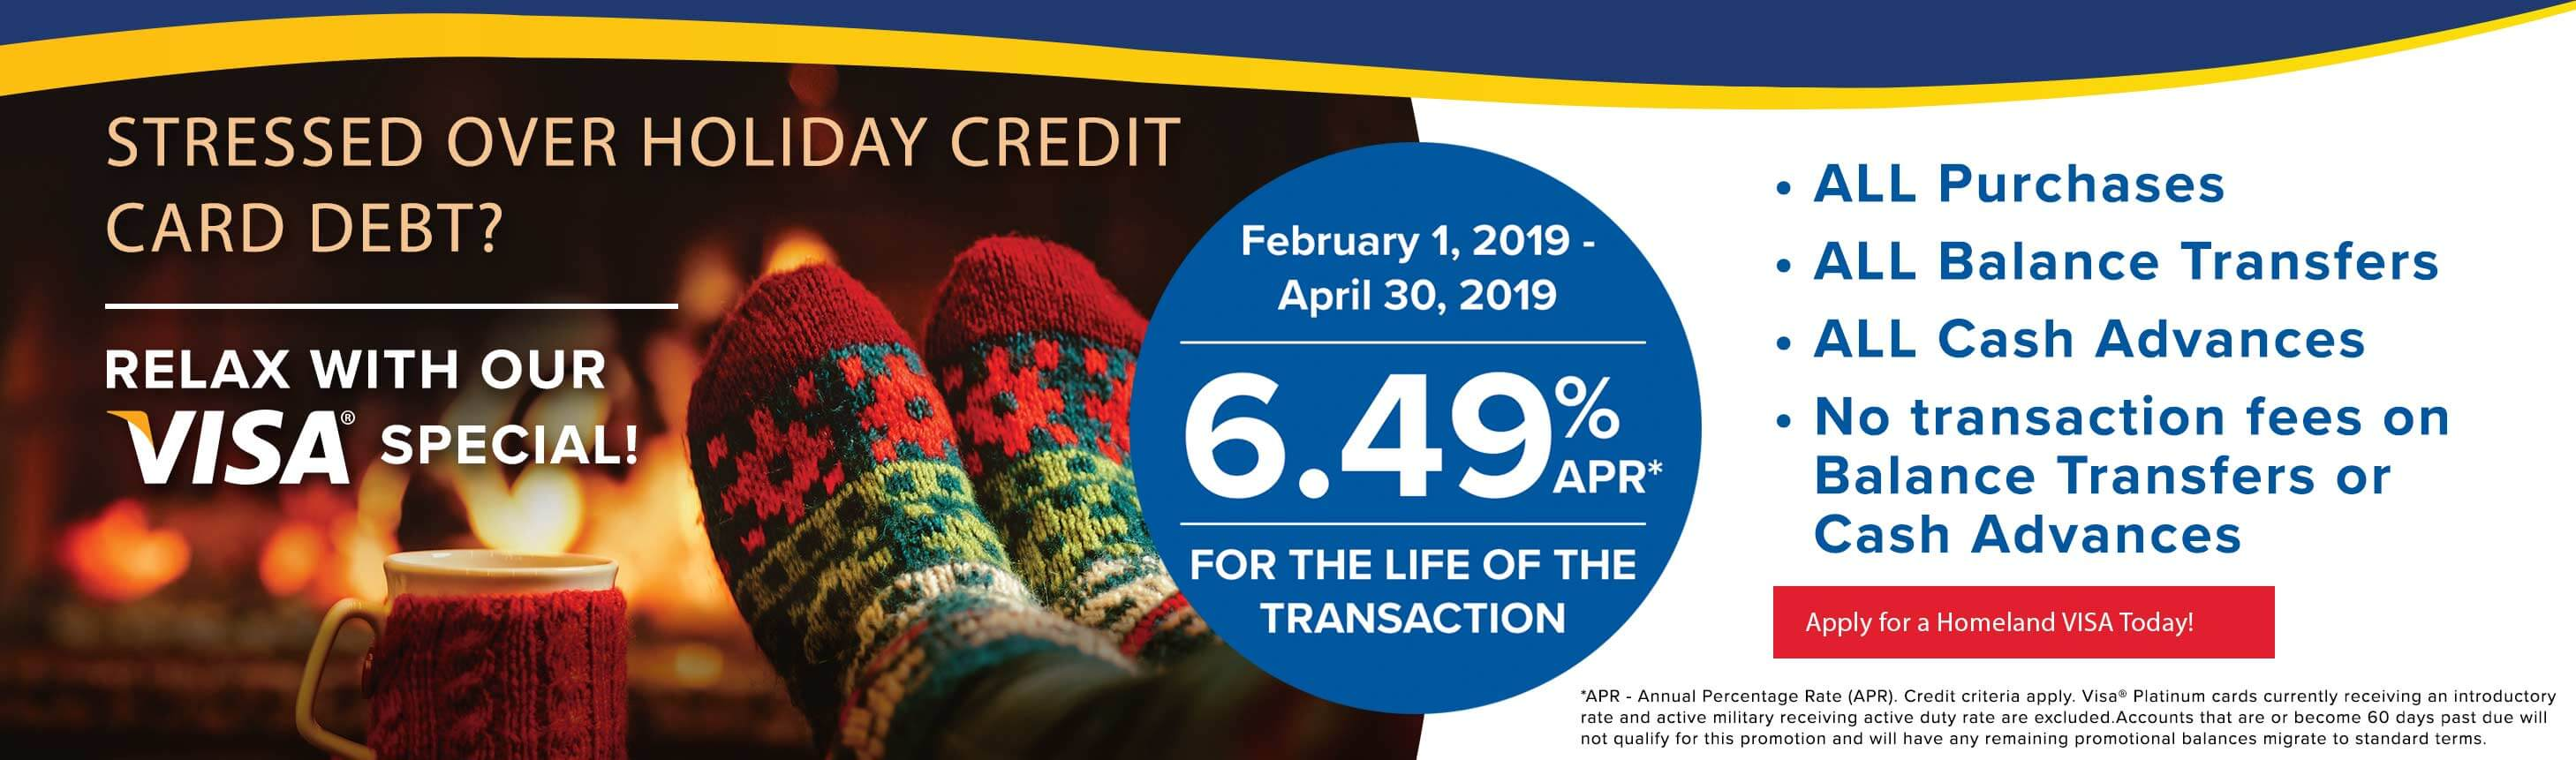 Stressed over holiday credit card debt? Relax with our VISA special! February 1 - April 30, 2019. 6.49% apr for the life of the transaction. Apply for a homeland visa today!